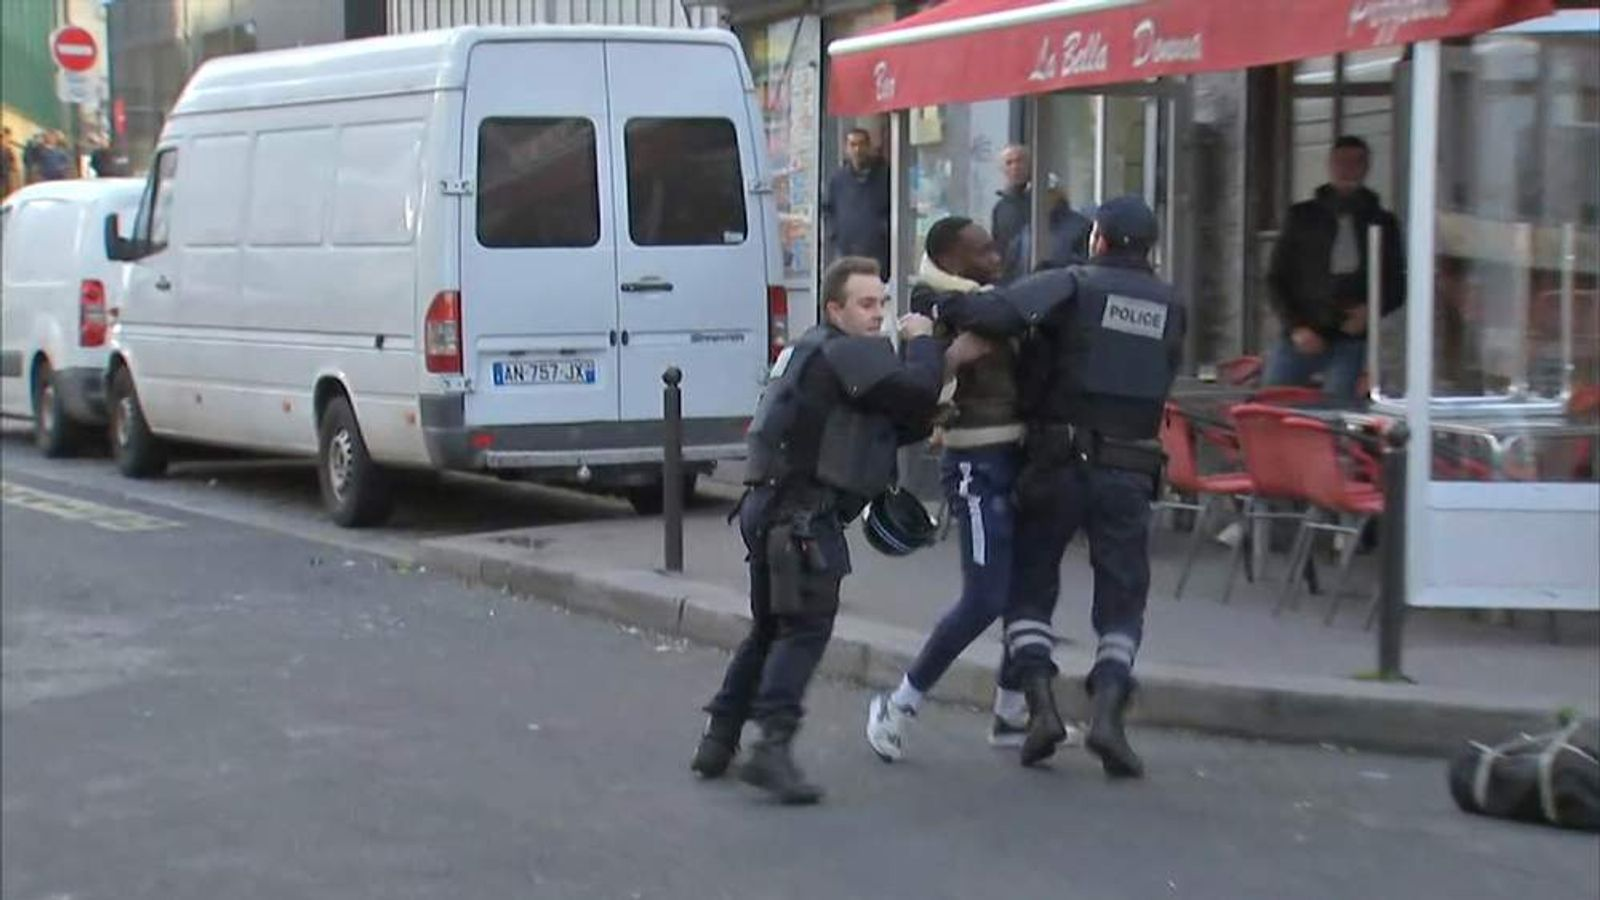 Man arrested in Paris